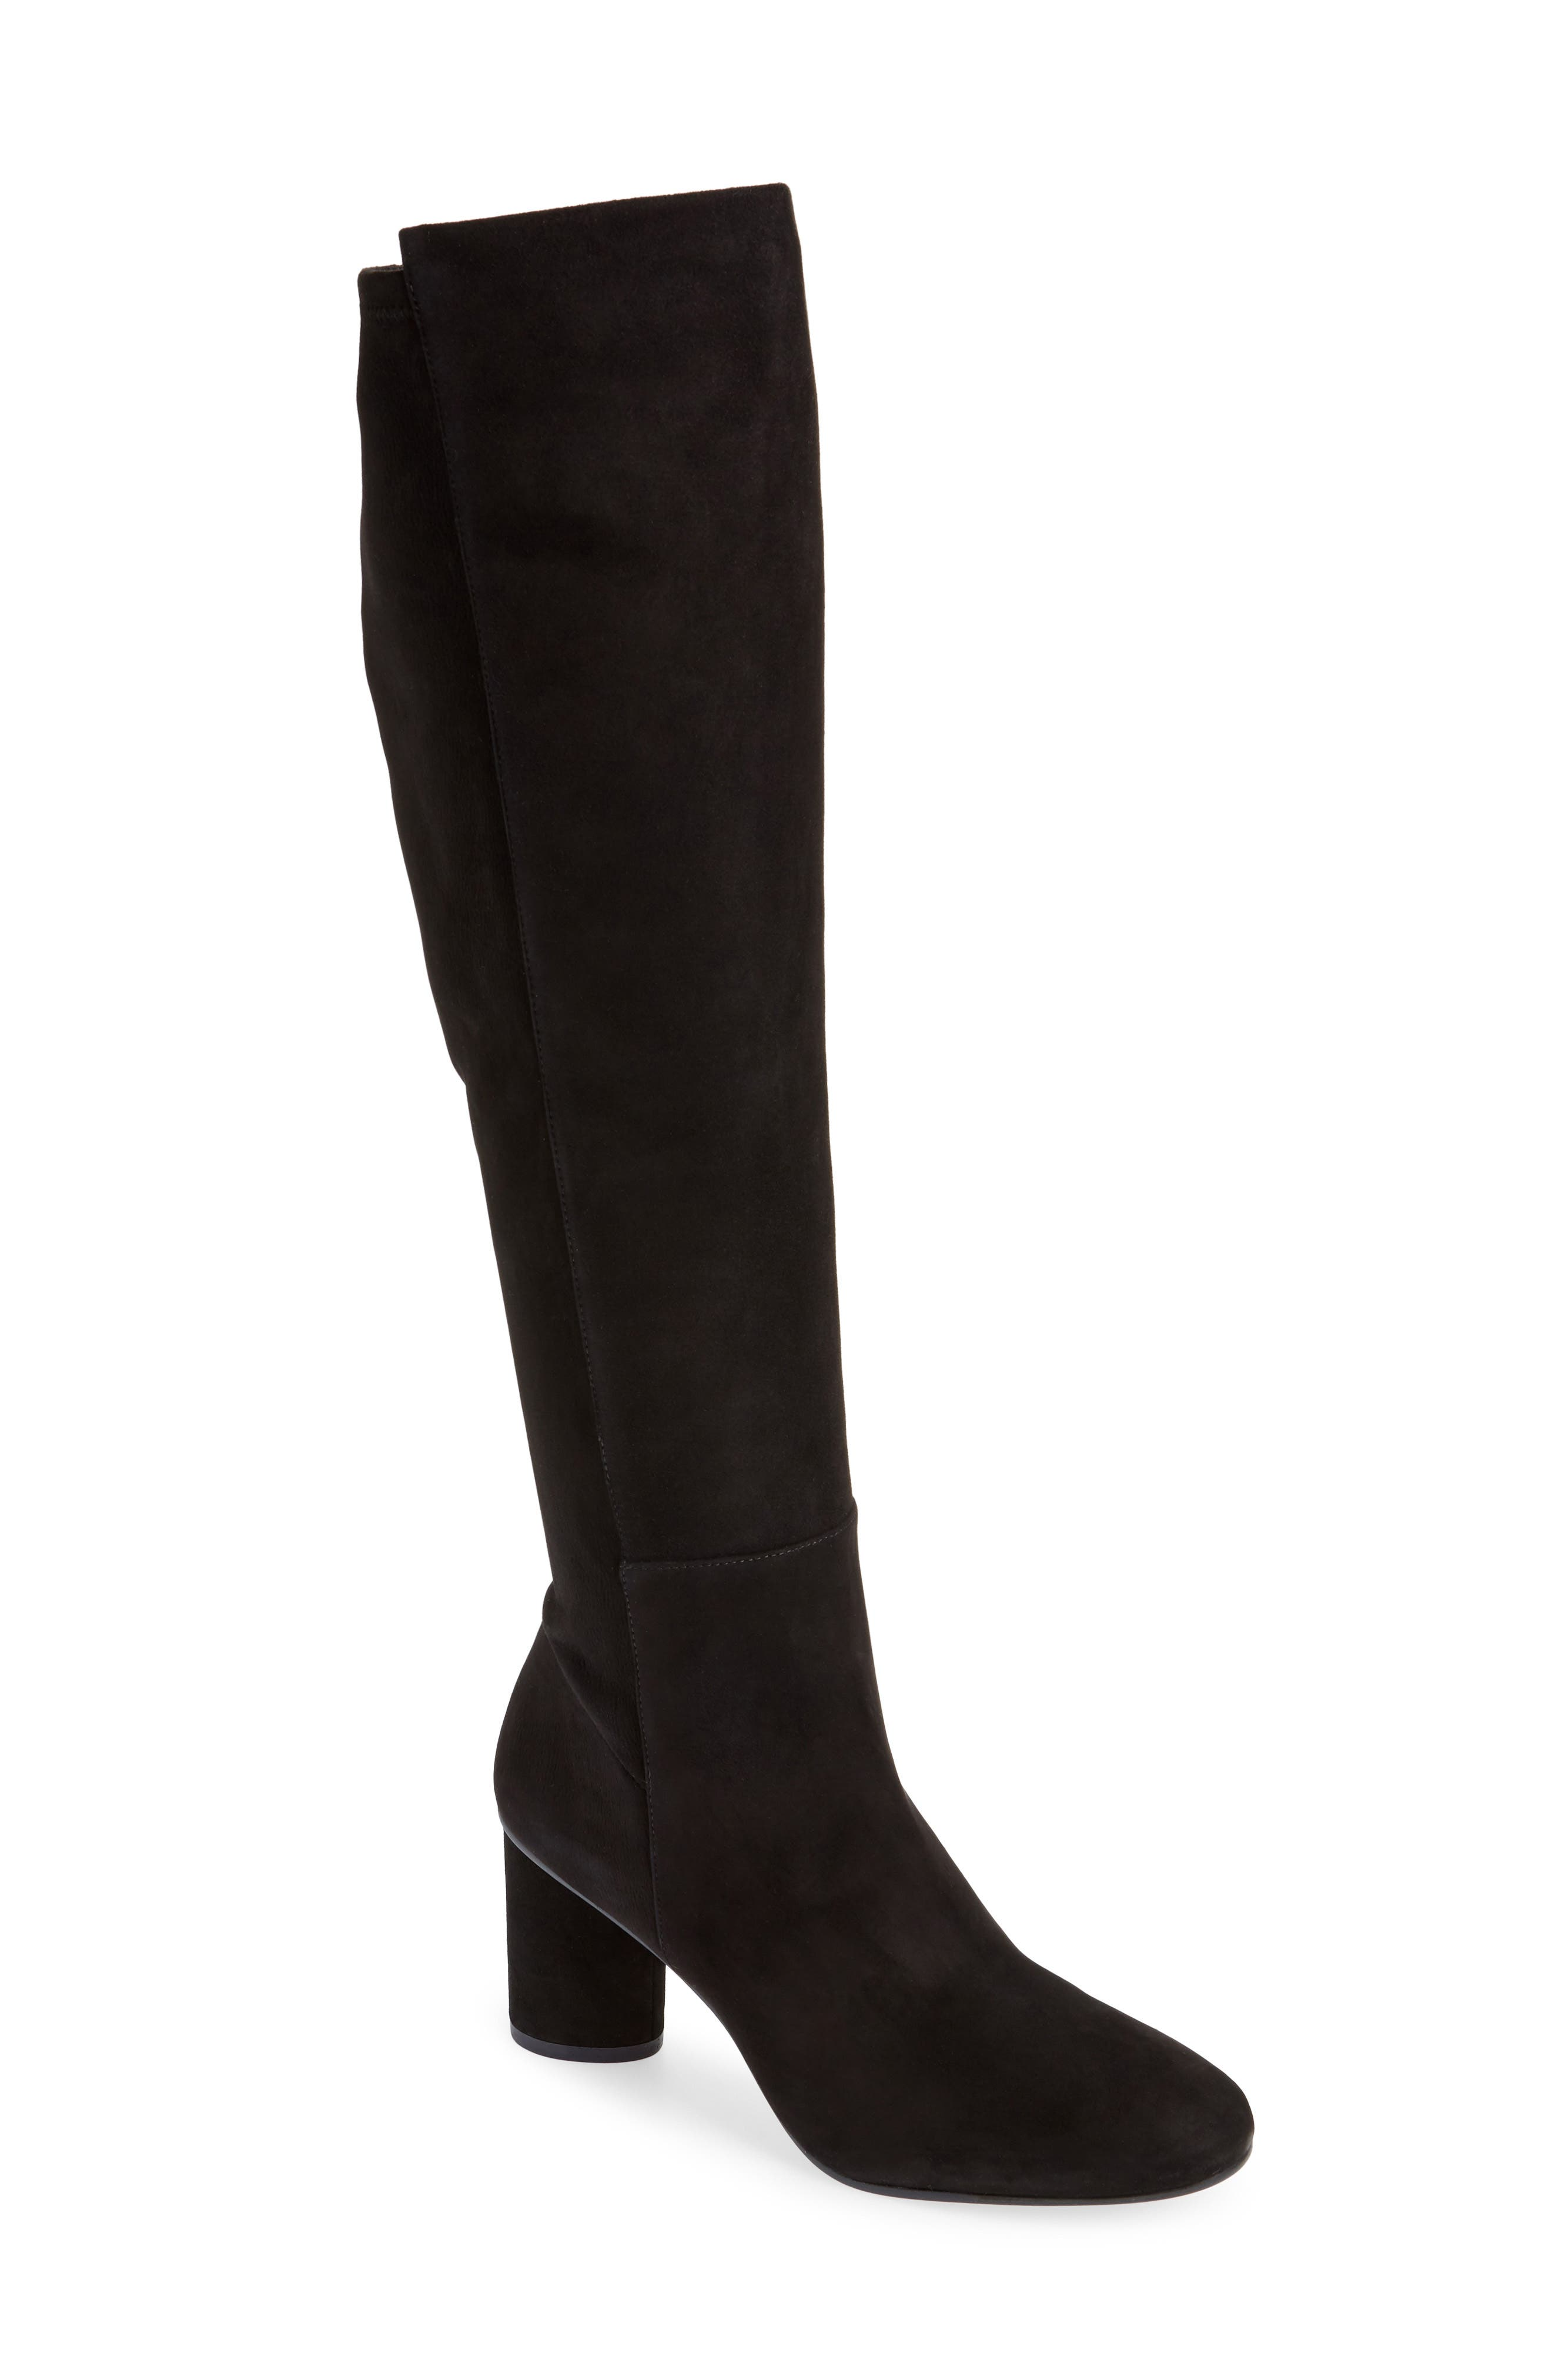 Eloise 75 Over the Knee Boot,                         Main,                         color, 002